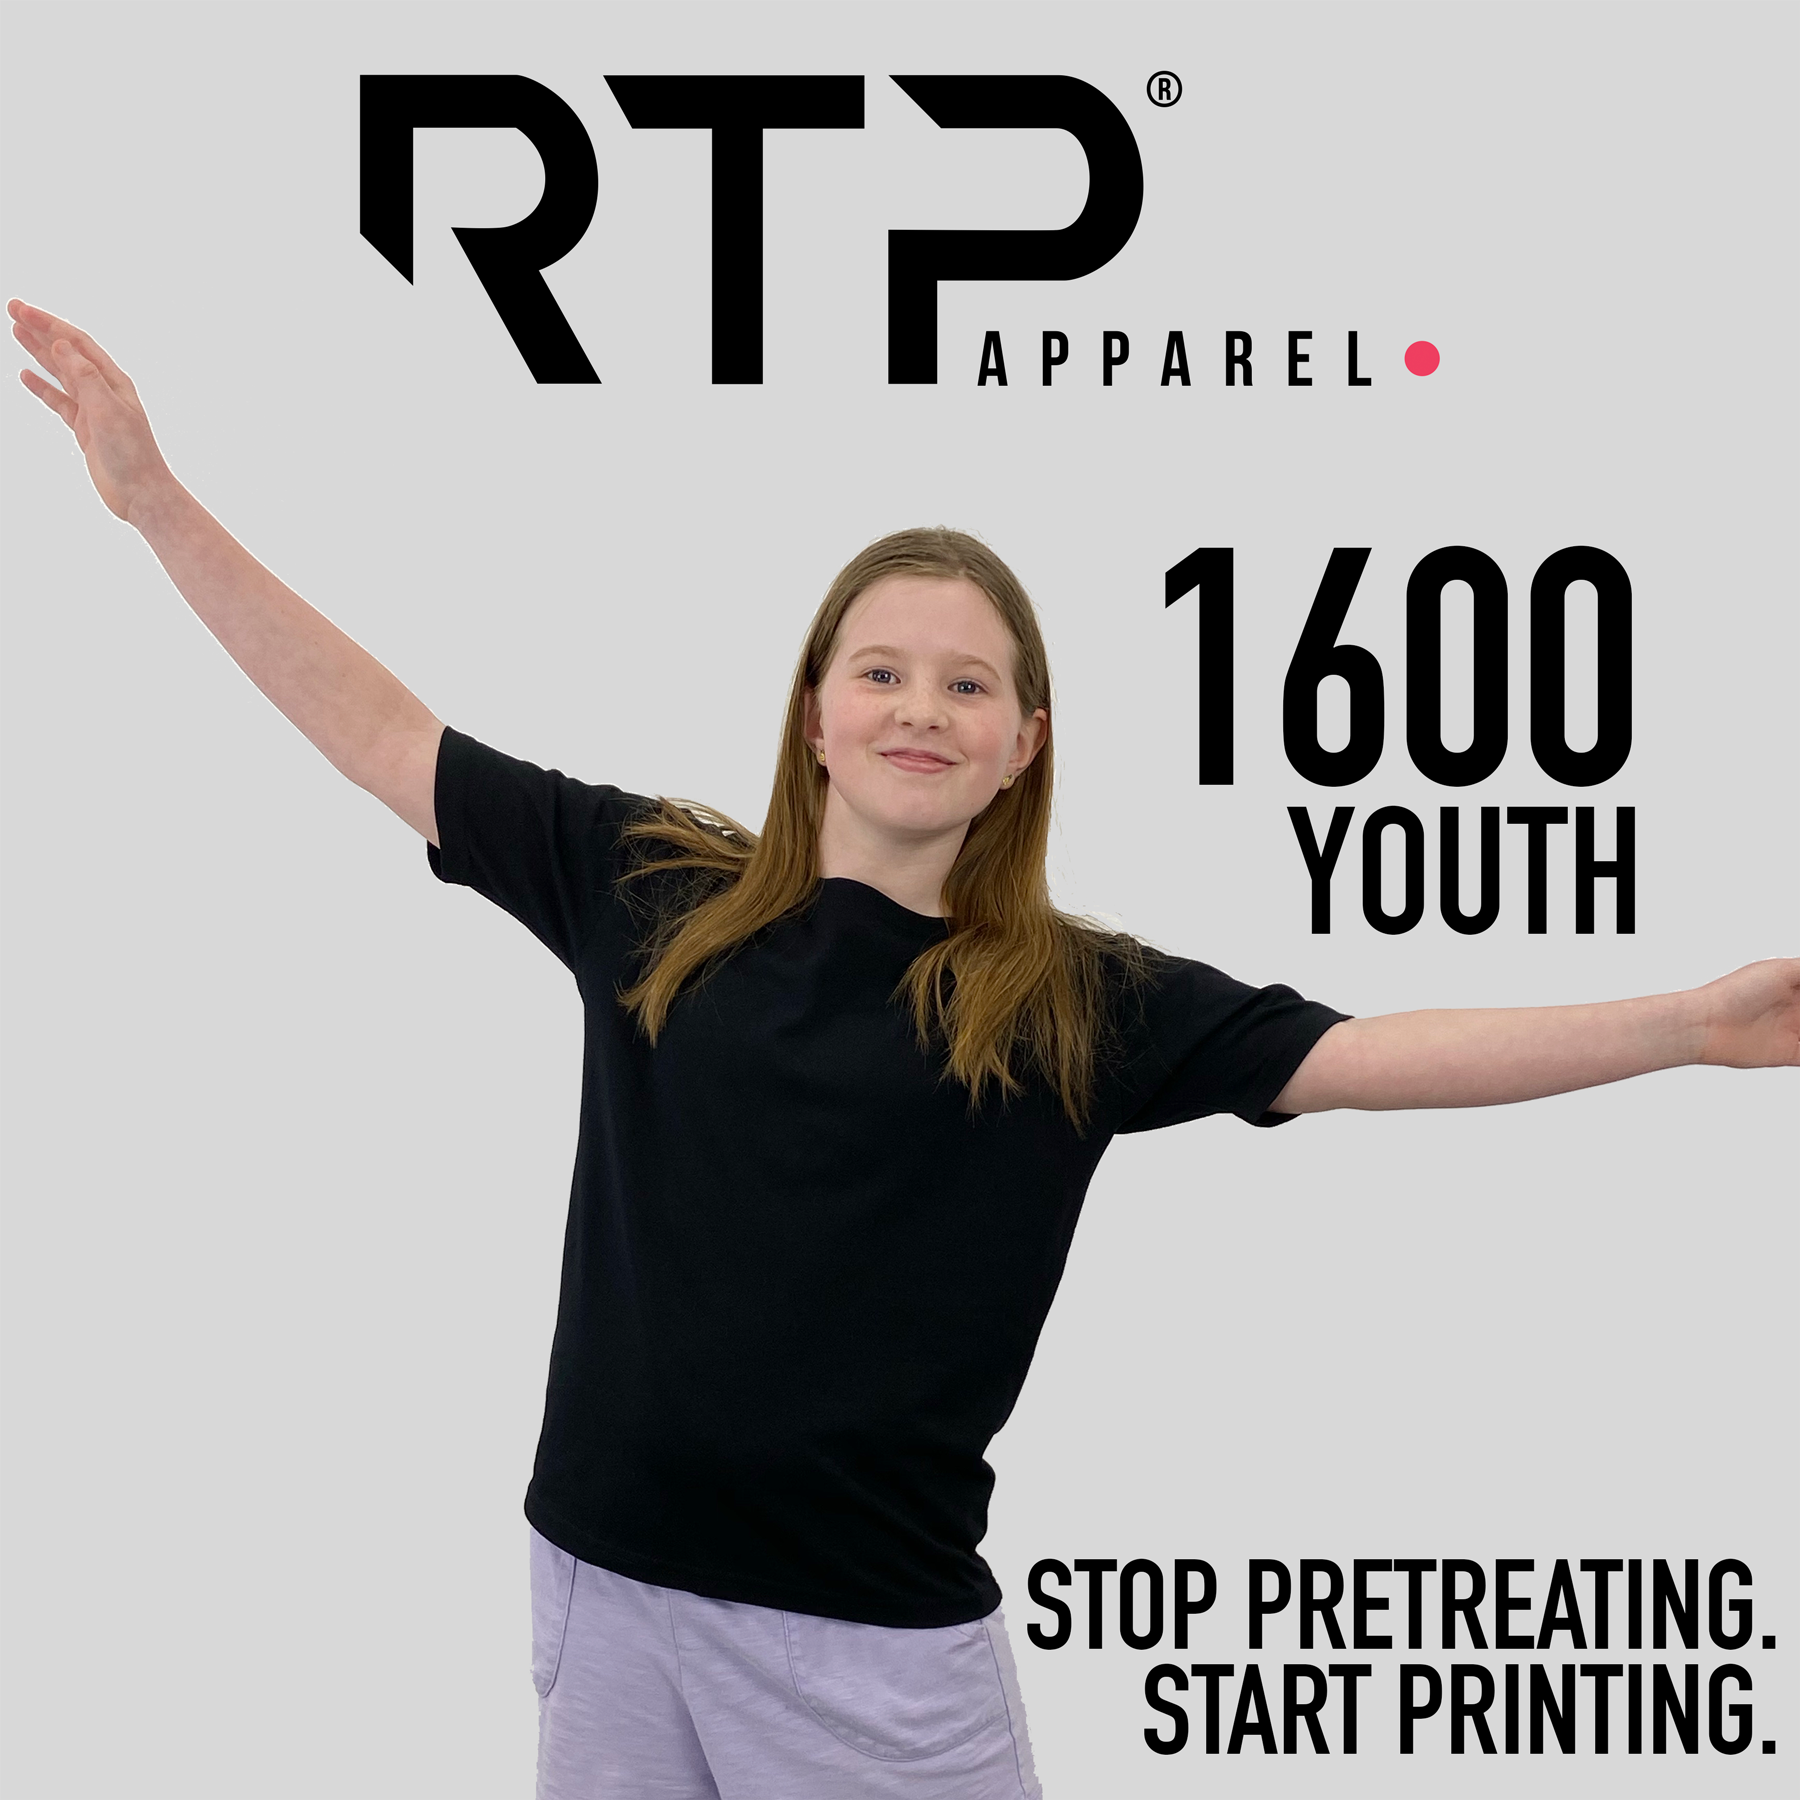 New RTP Apparel BLACK Youth Fully Pretreated Shirt Now Available